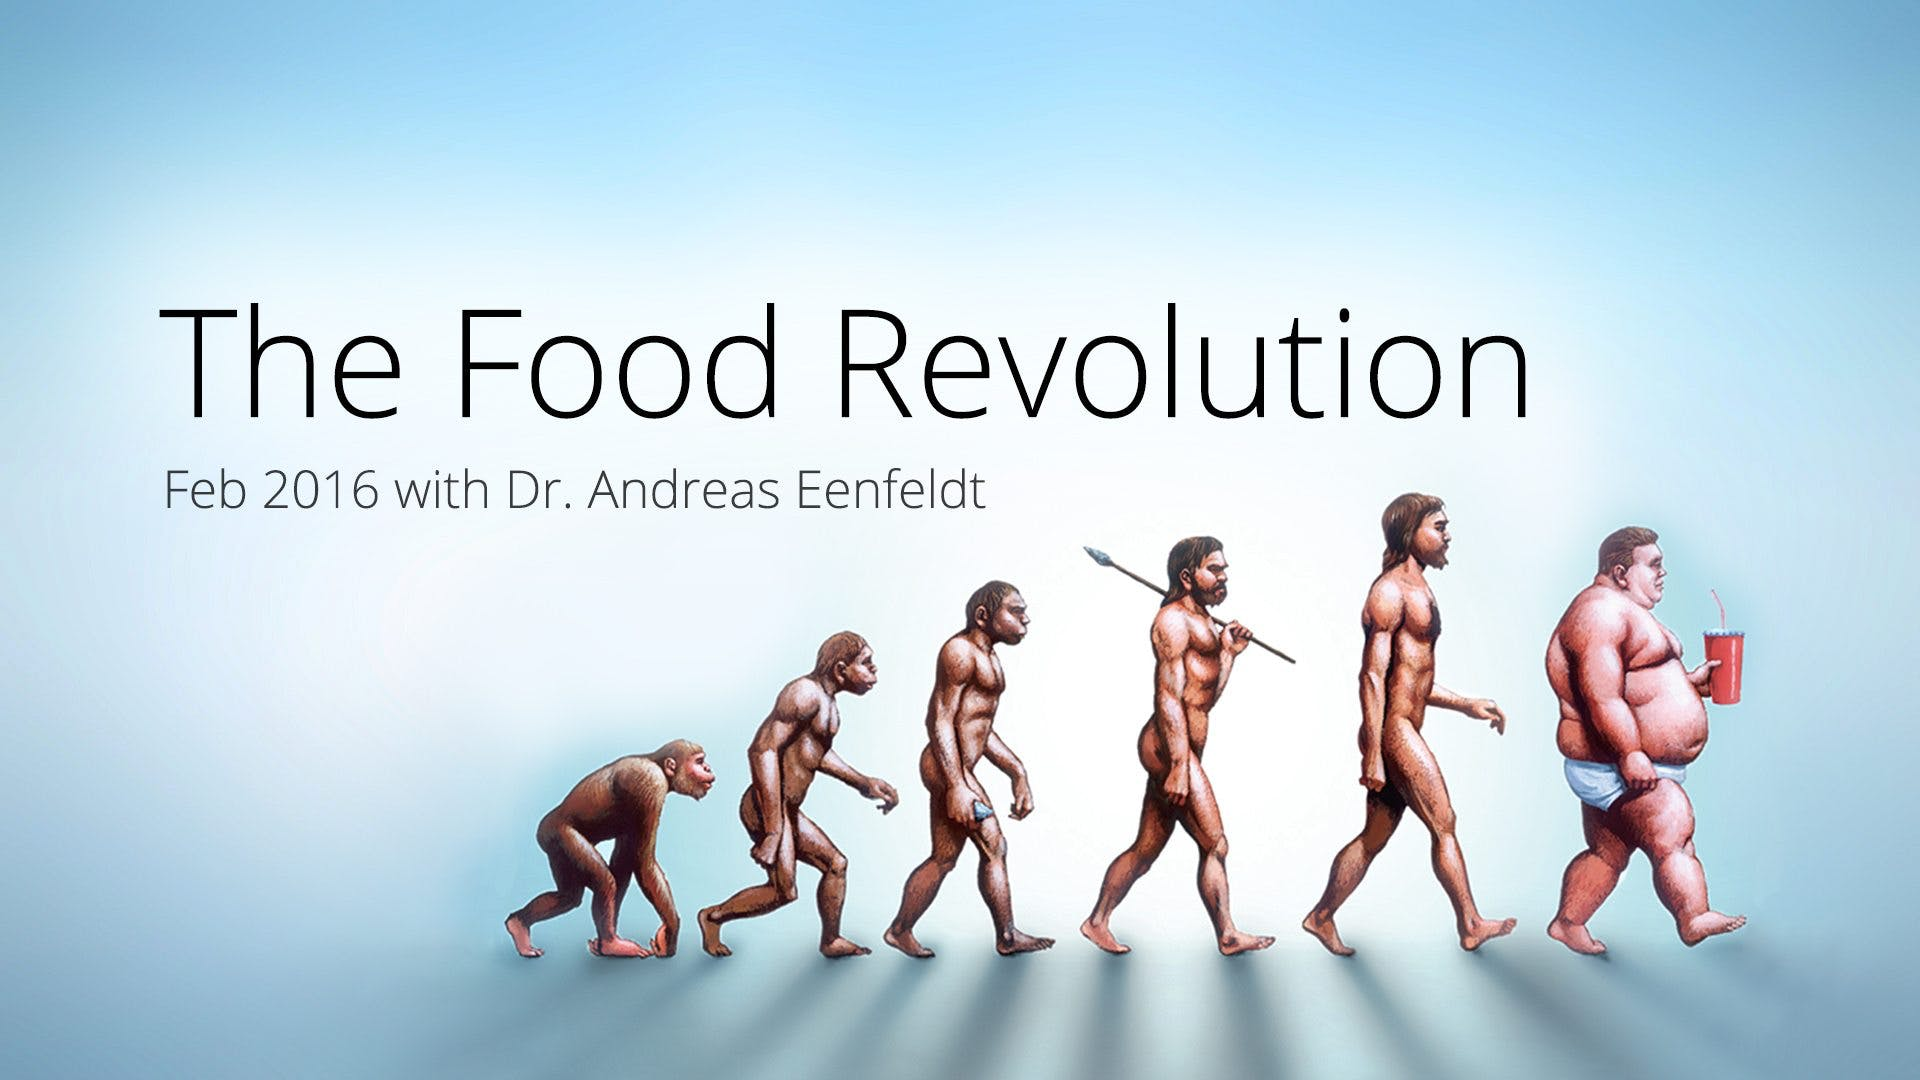 The Food Revolution 2016 Update – with Dr. Andreas Eenfeldt